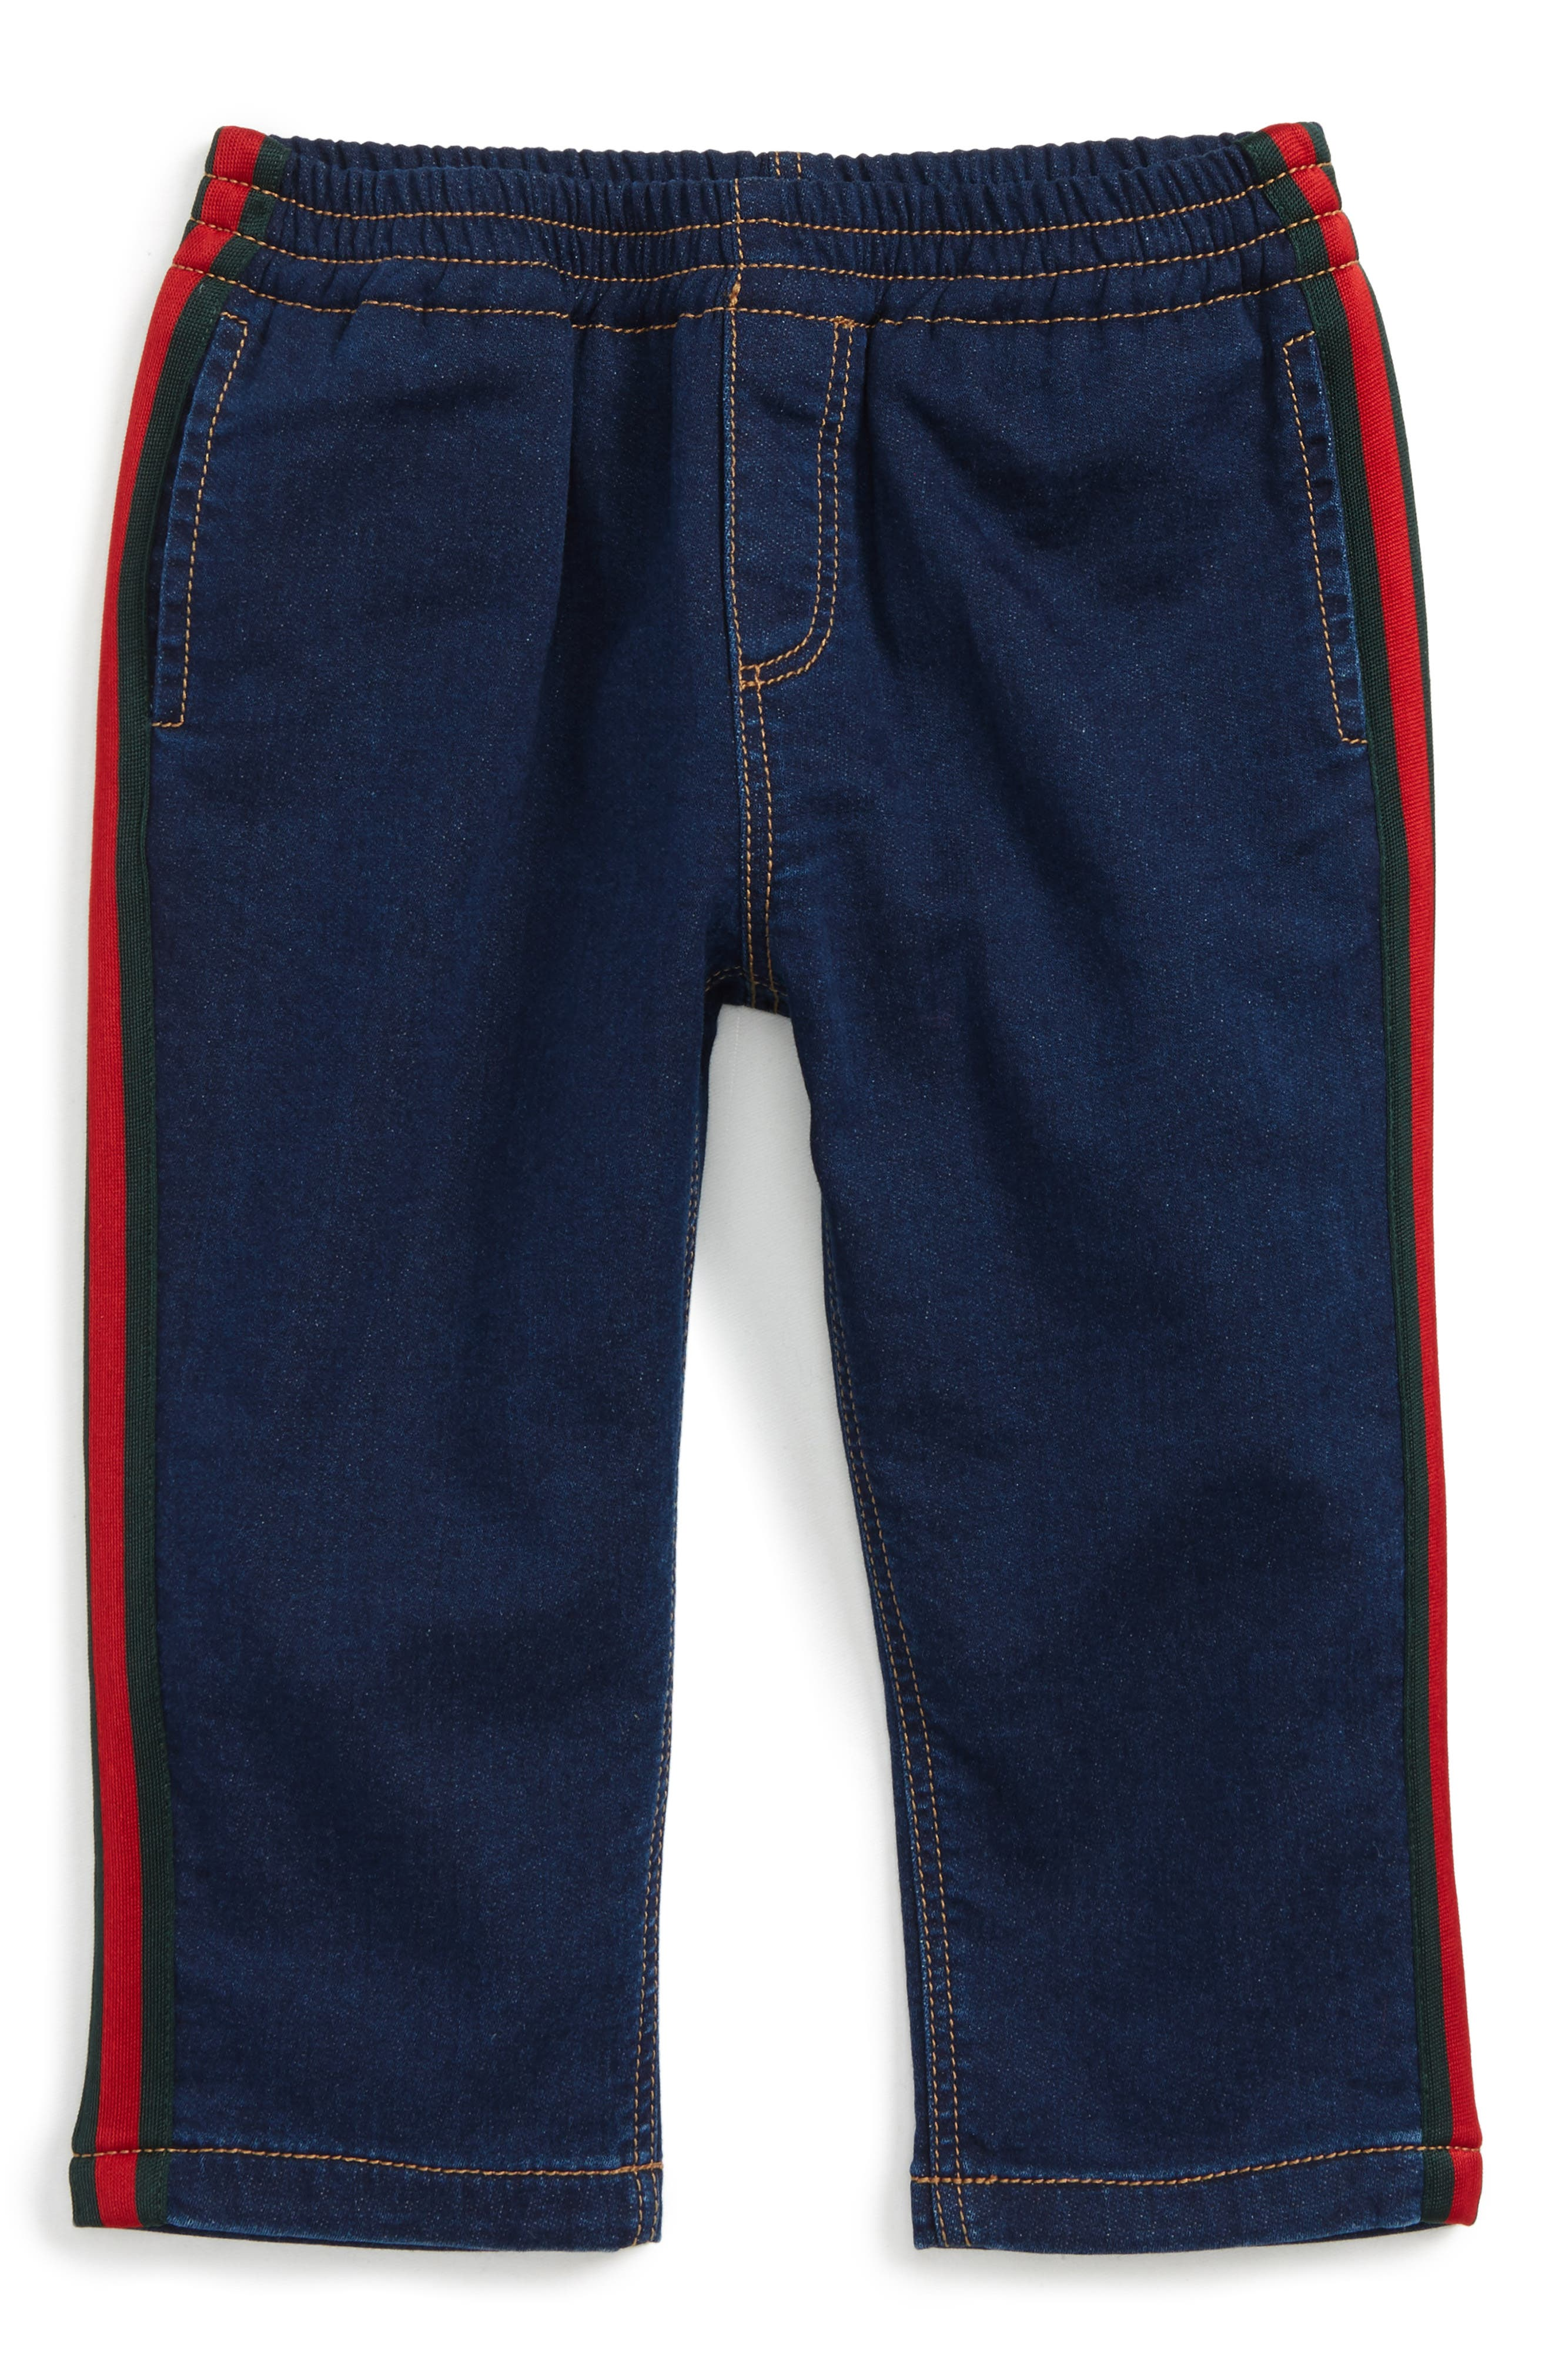 Alternate Image 1 Selected - Gucci Stripe Jeans (Baby Boys)